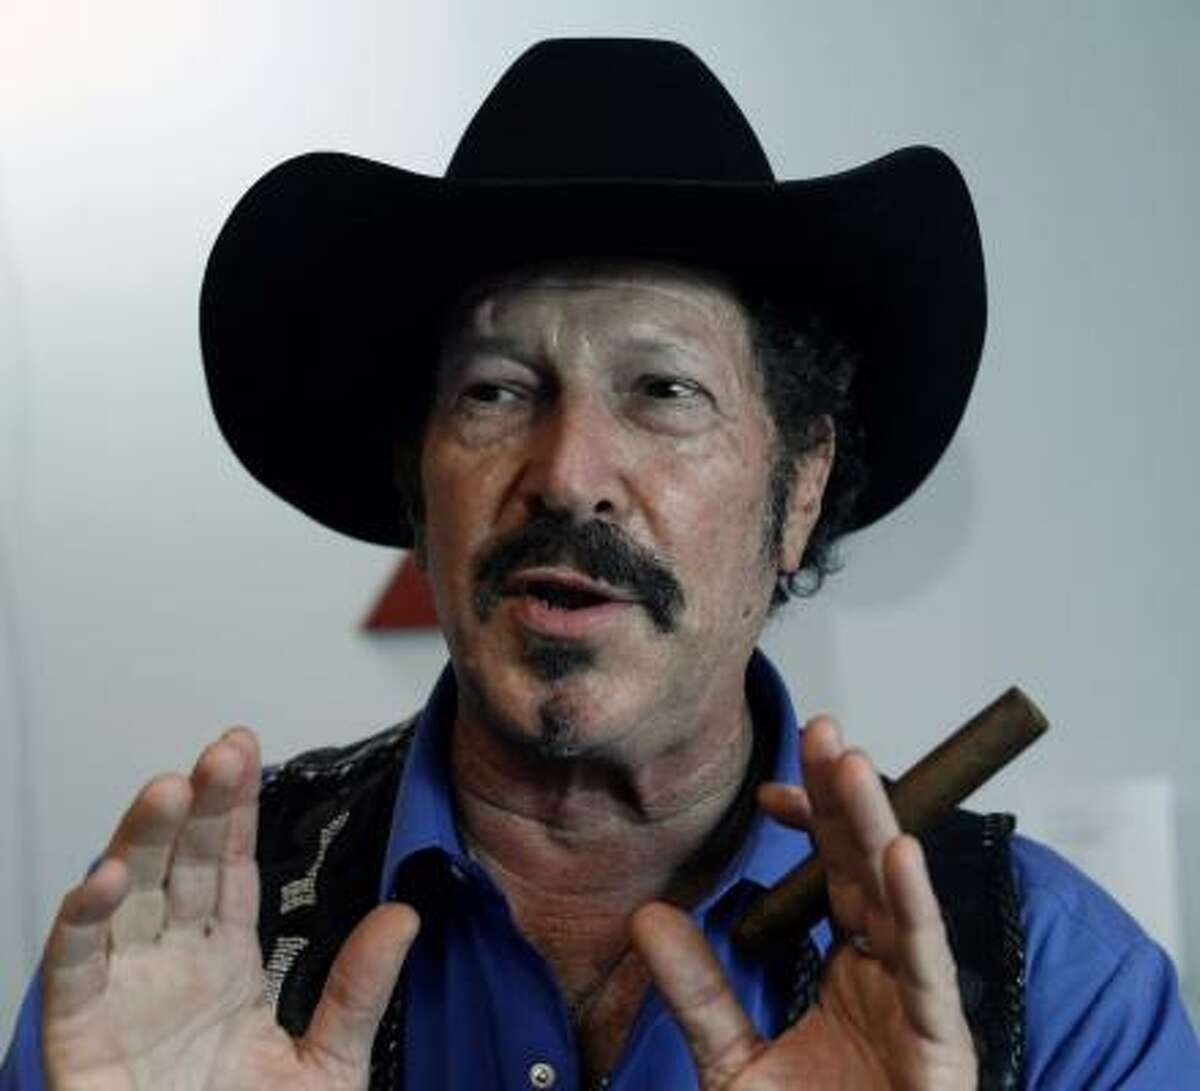 Kinky Friedman: Talk about marching to your own drummer. Friedman is a politician, humorist, author, singer, songwriter and former candidate for Governor of Texas.